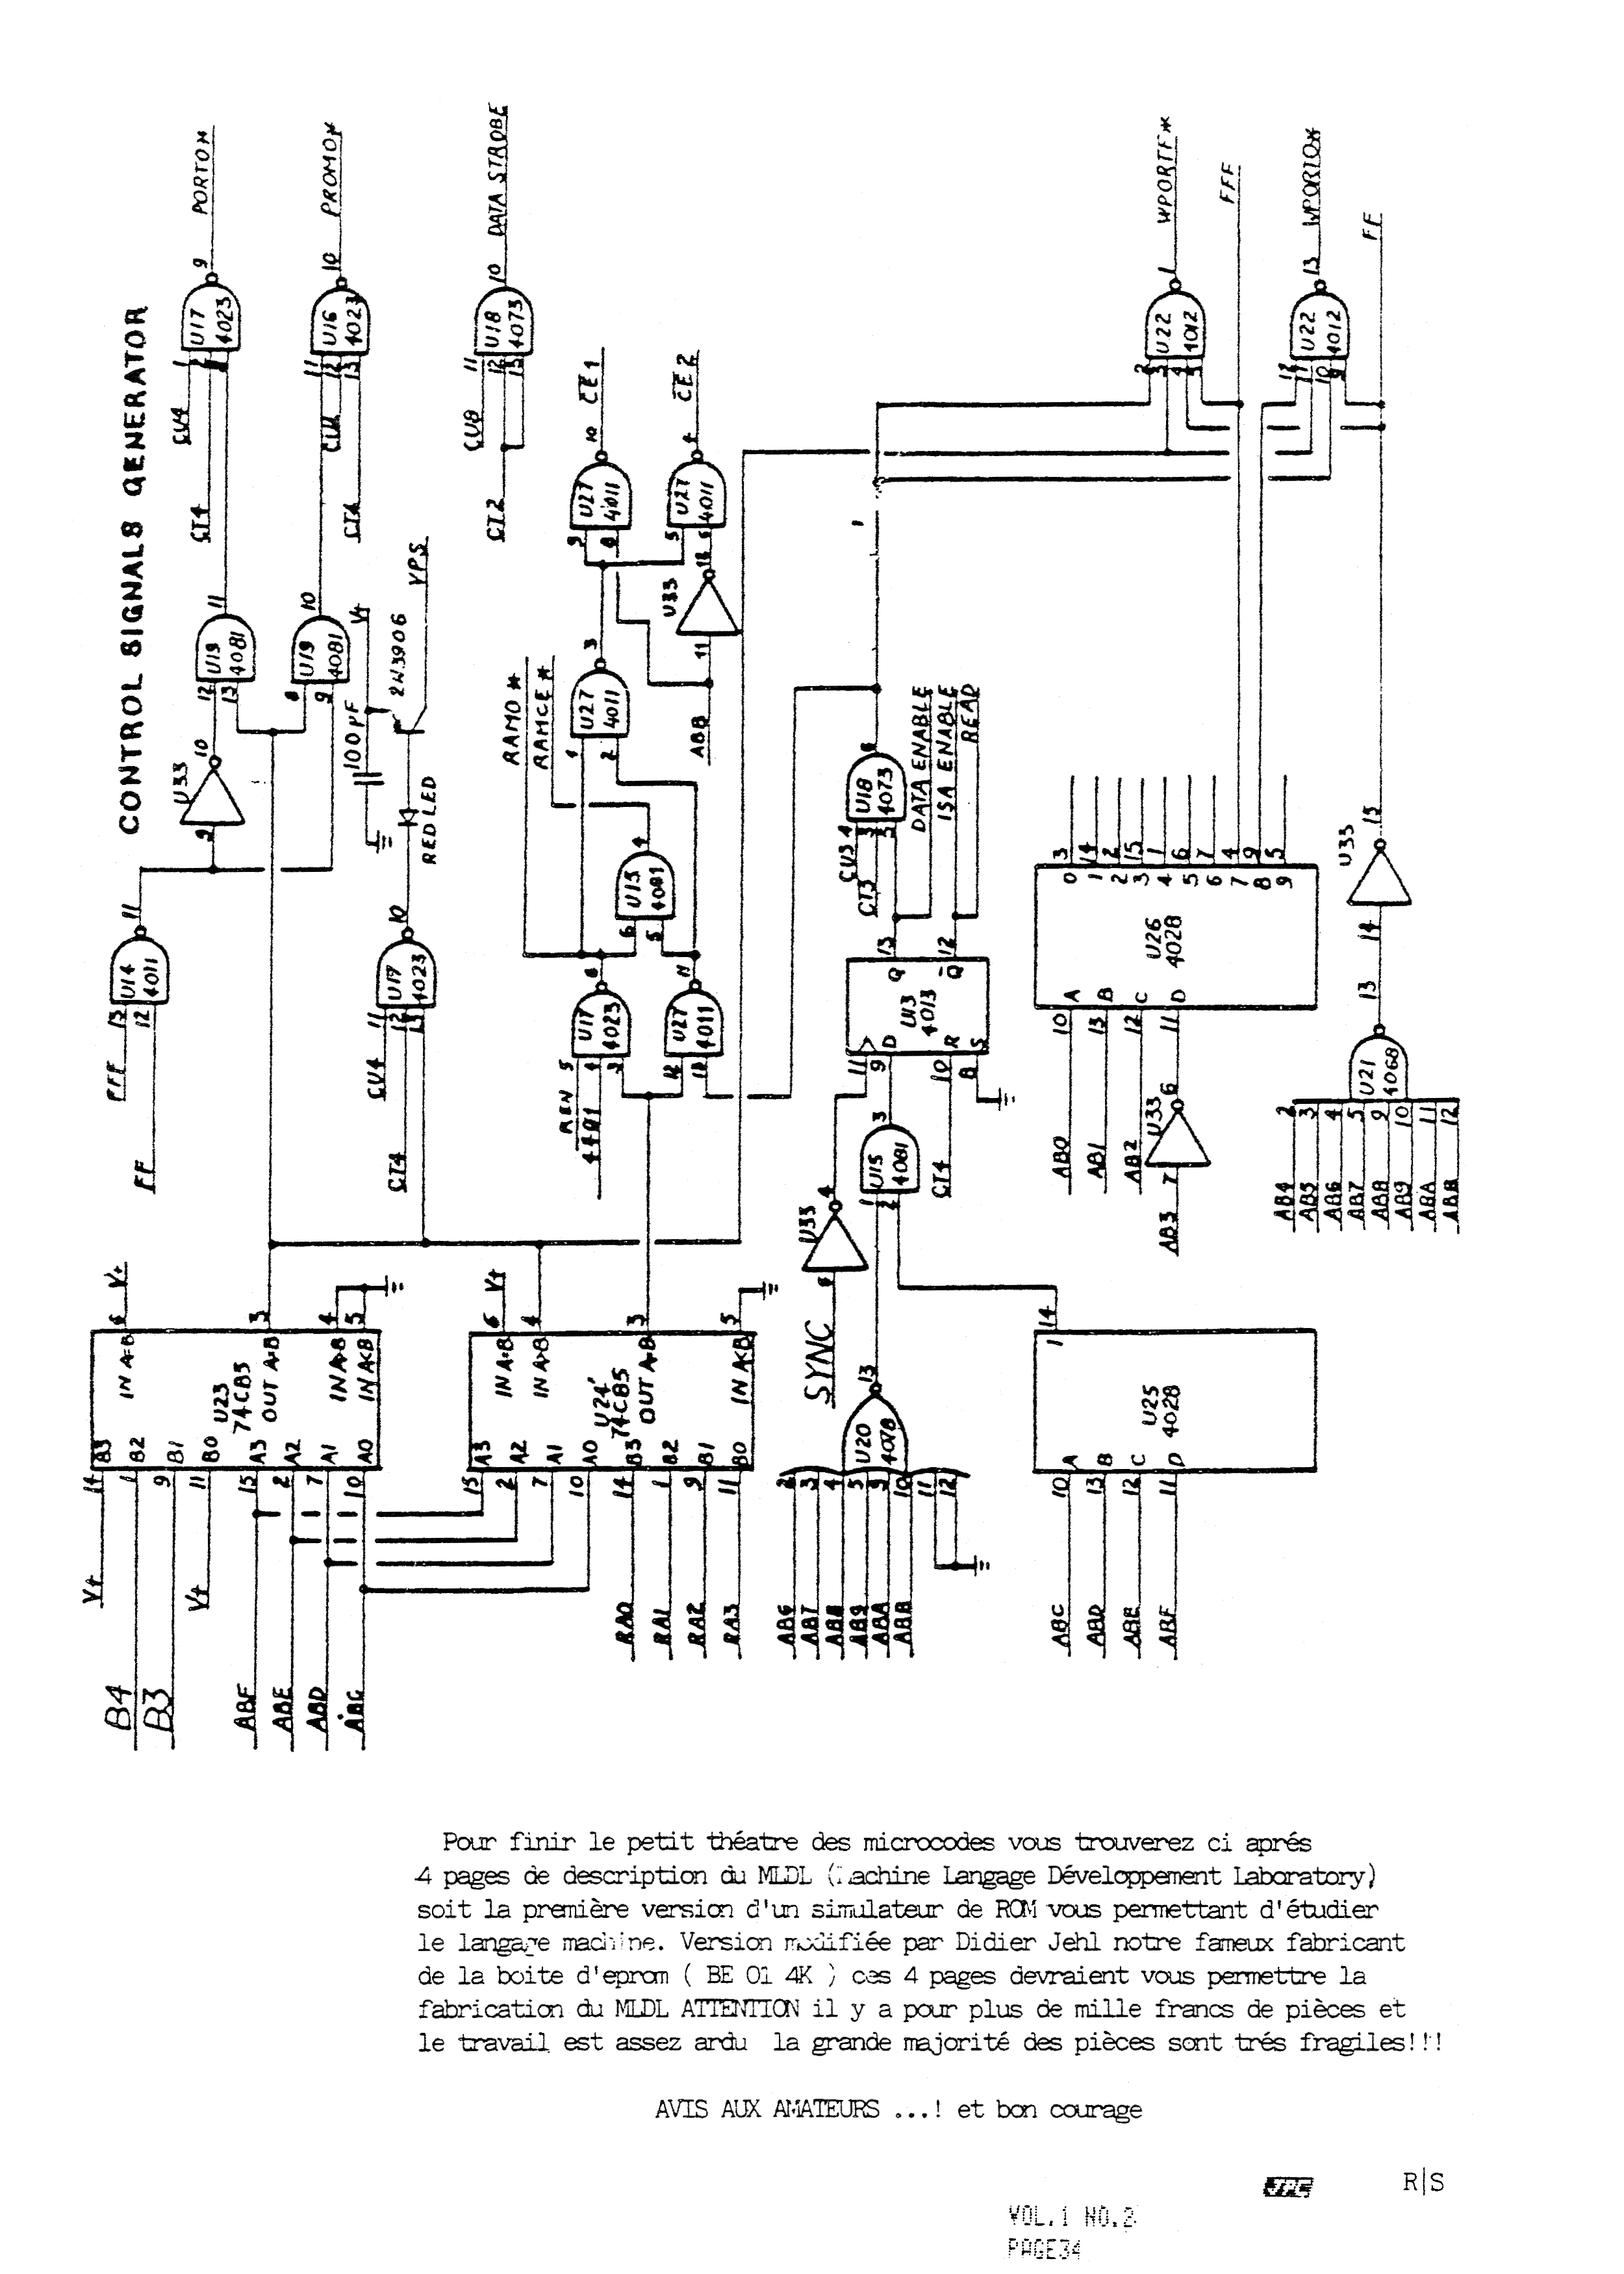 Jp-2-page-34-1000